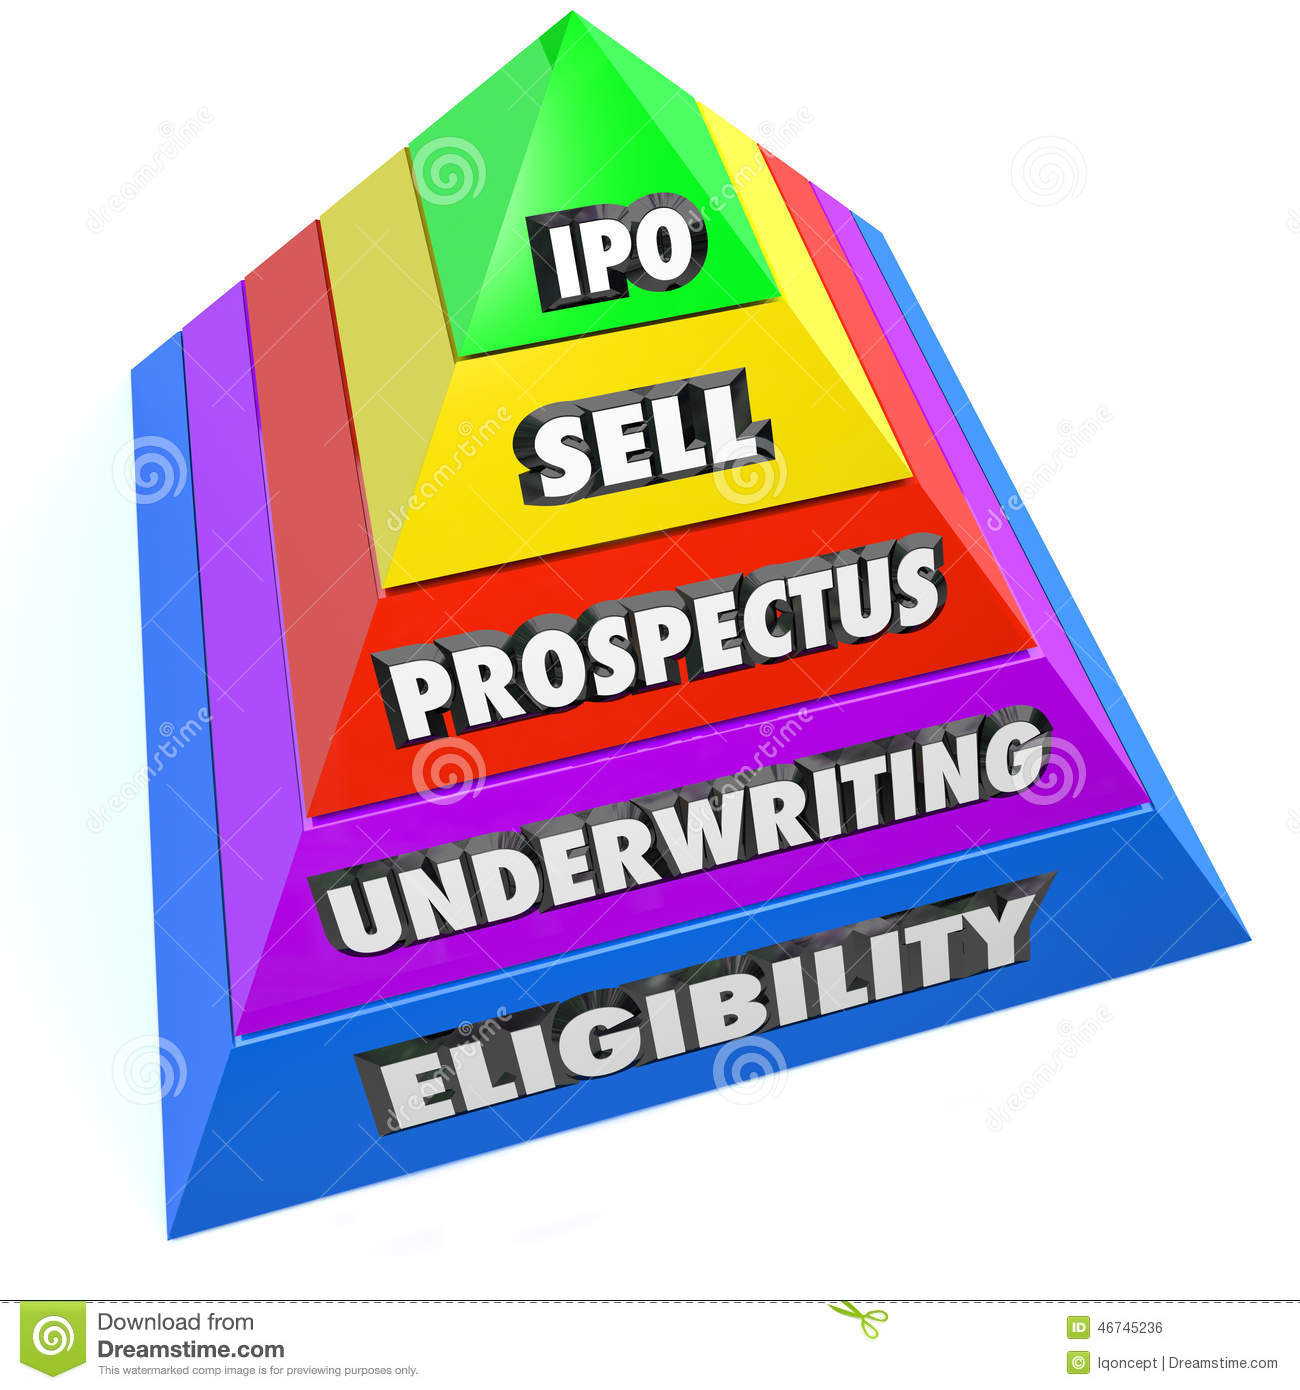 Profit from underwriting ipo